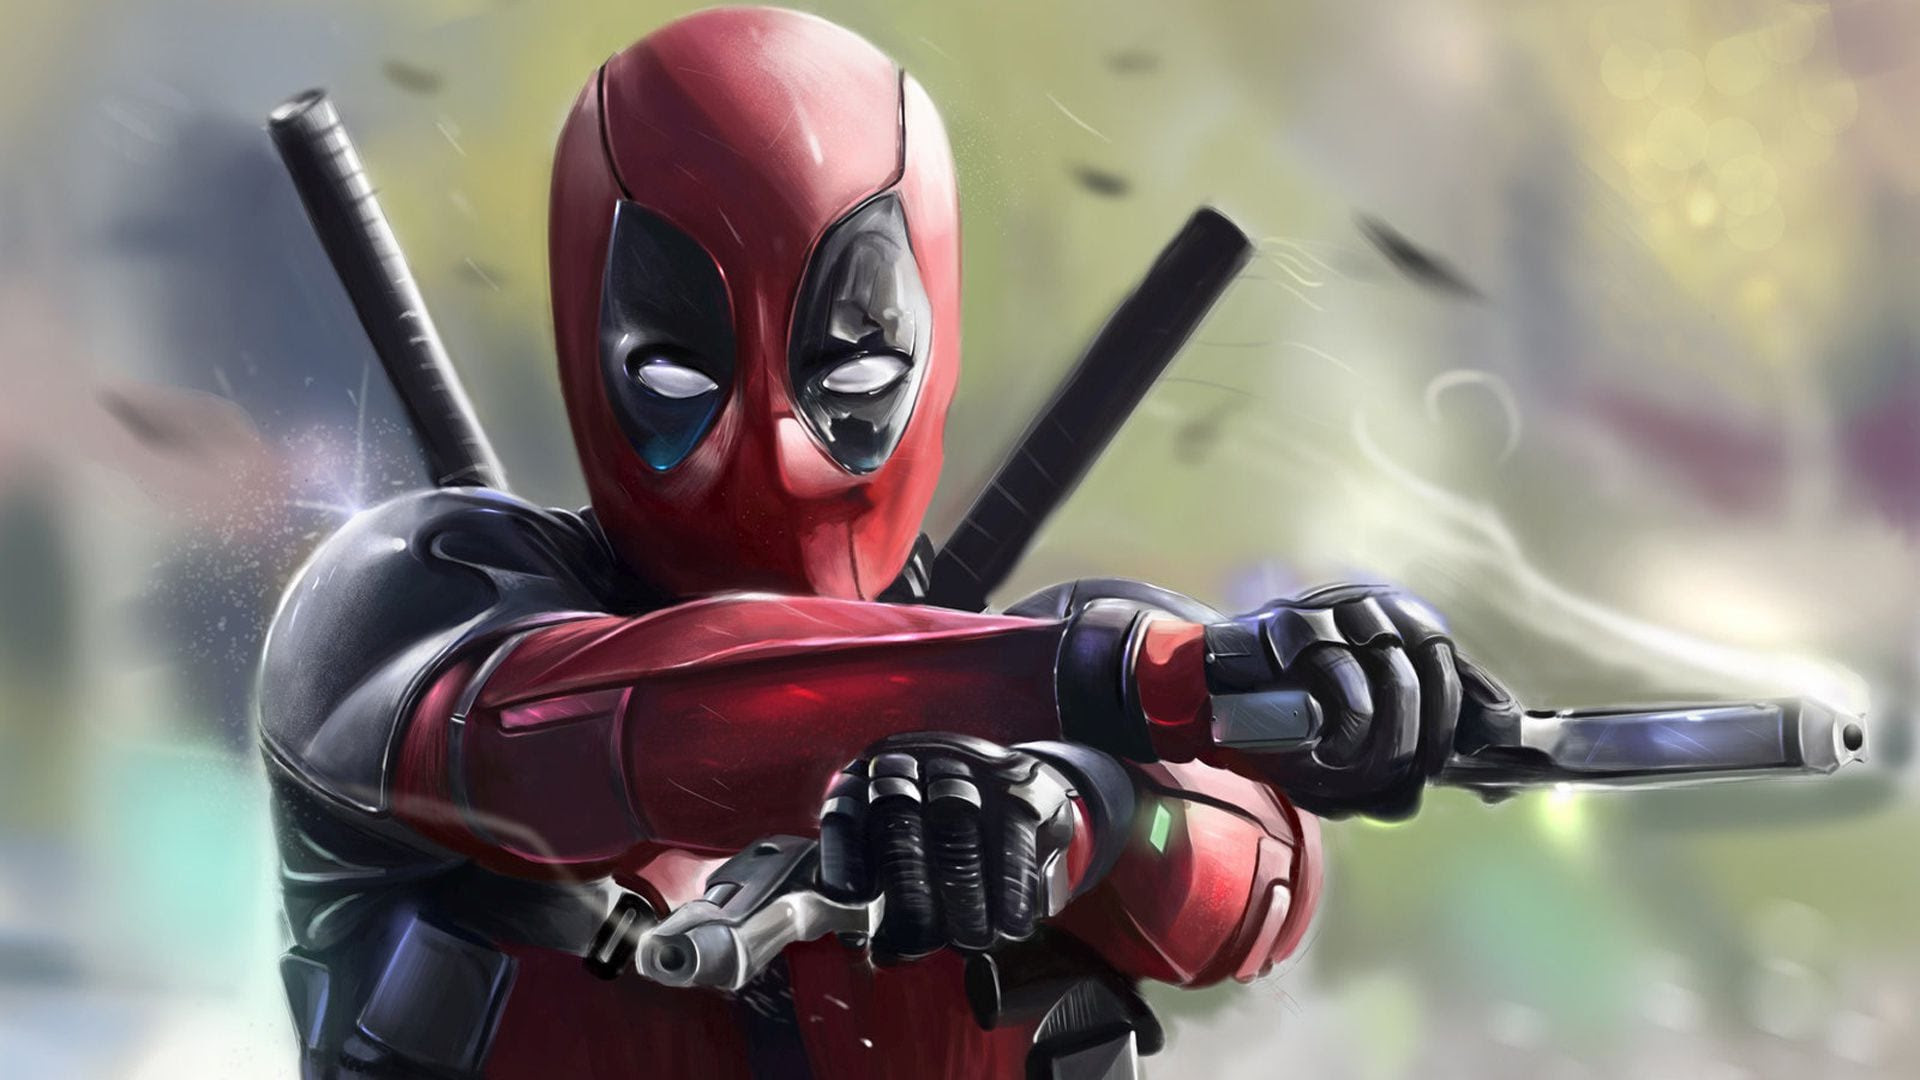 22 Deadpool Hd Wallpapers High Quality Download